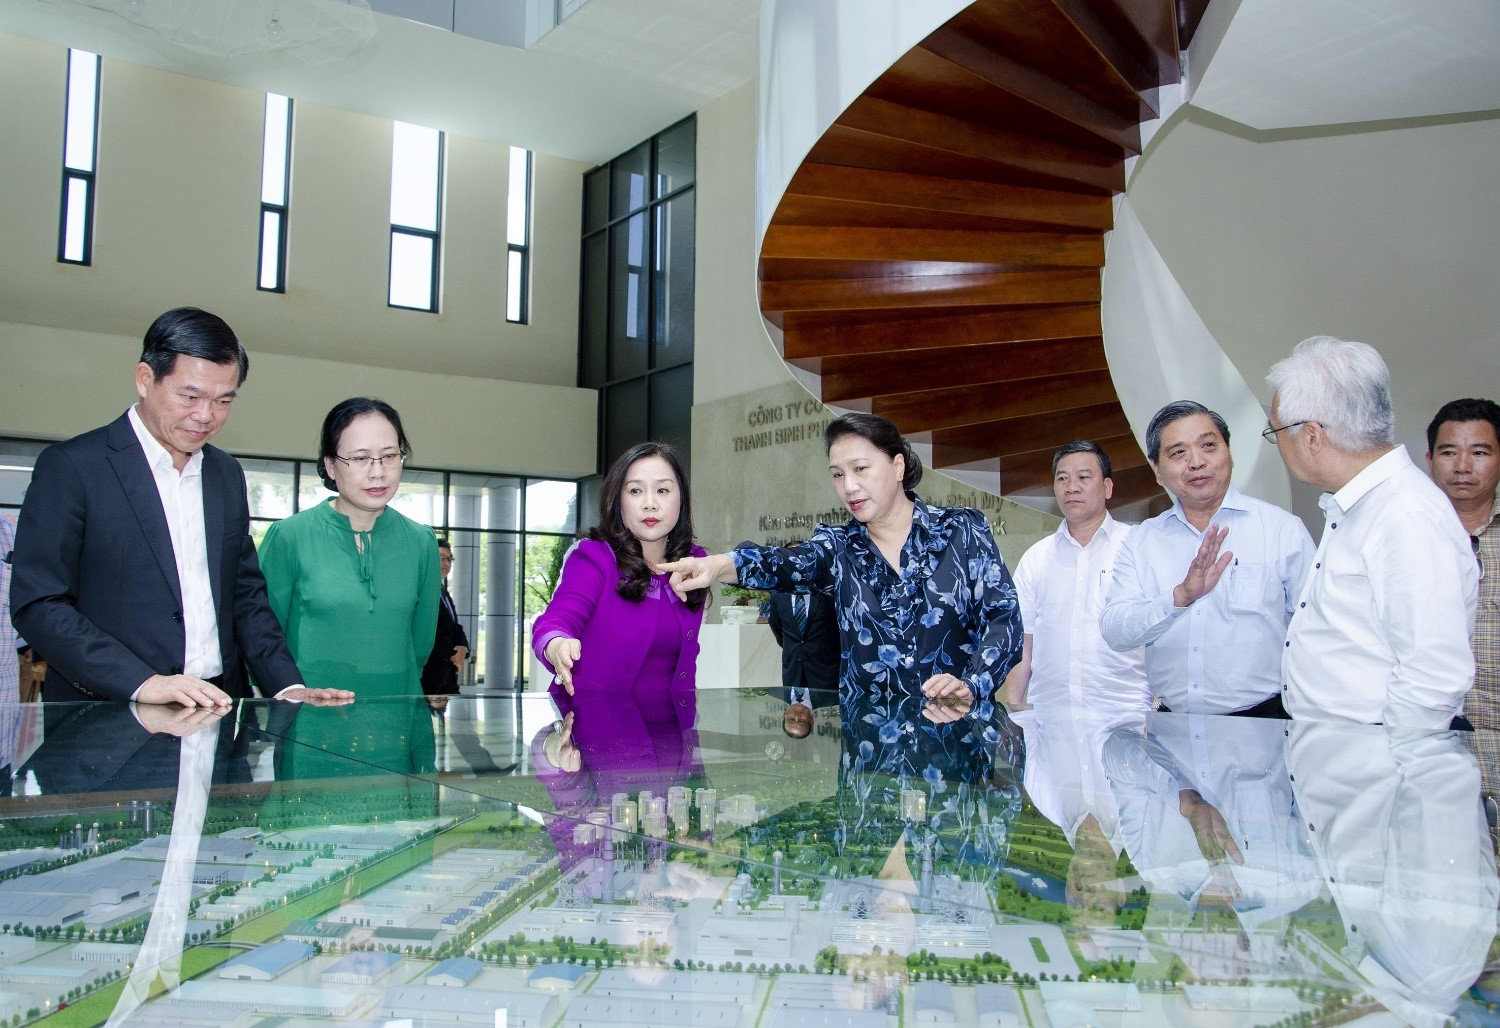 Chairwoman of the national assembly Nguyen Thi Kim Ngan worked with Thanh Binh Phu My JSC